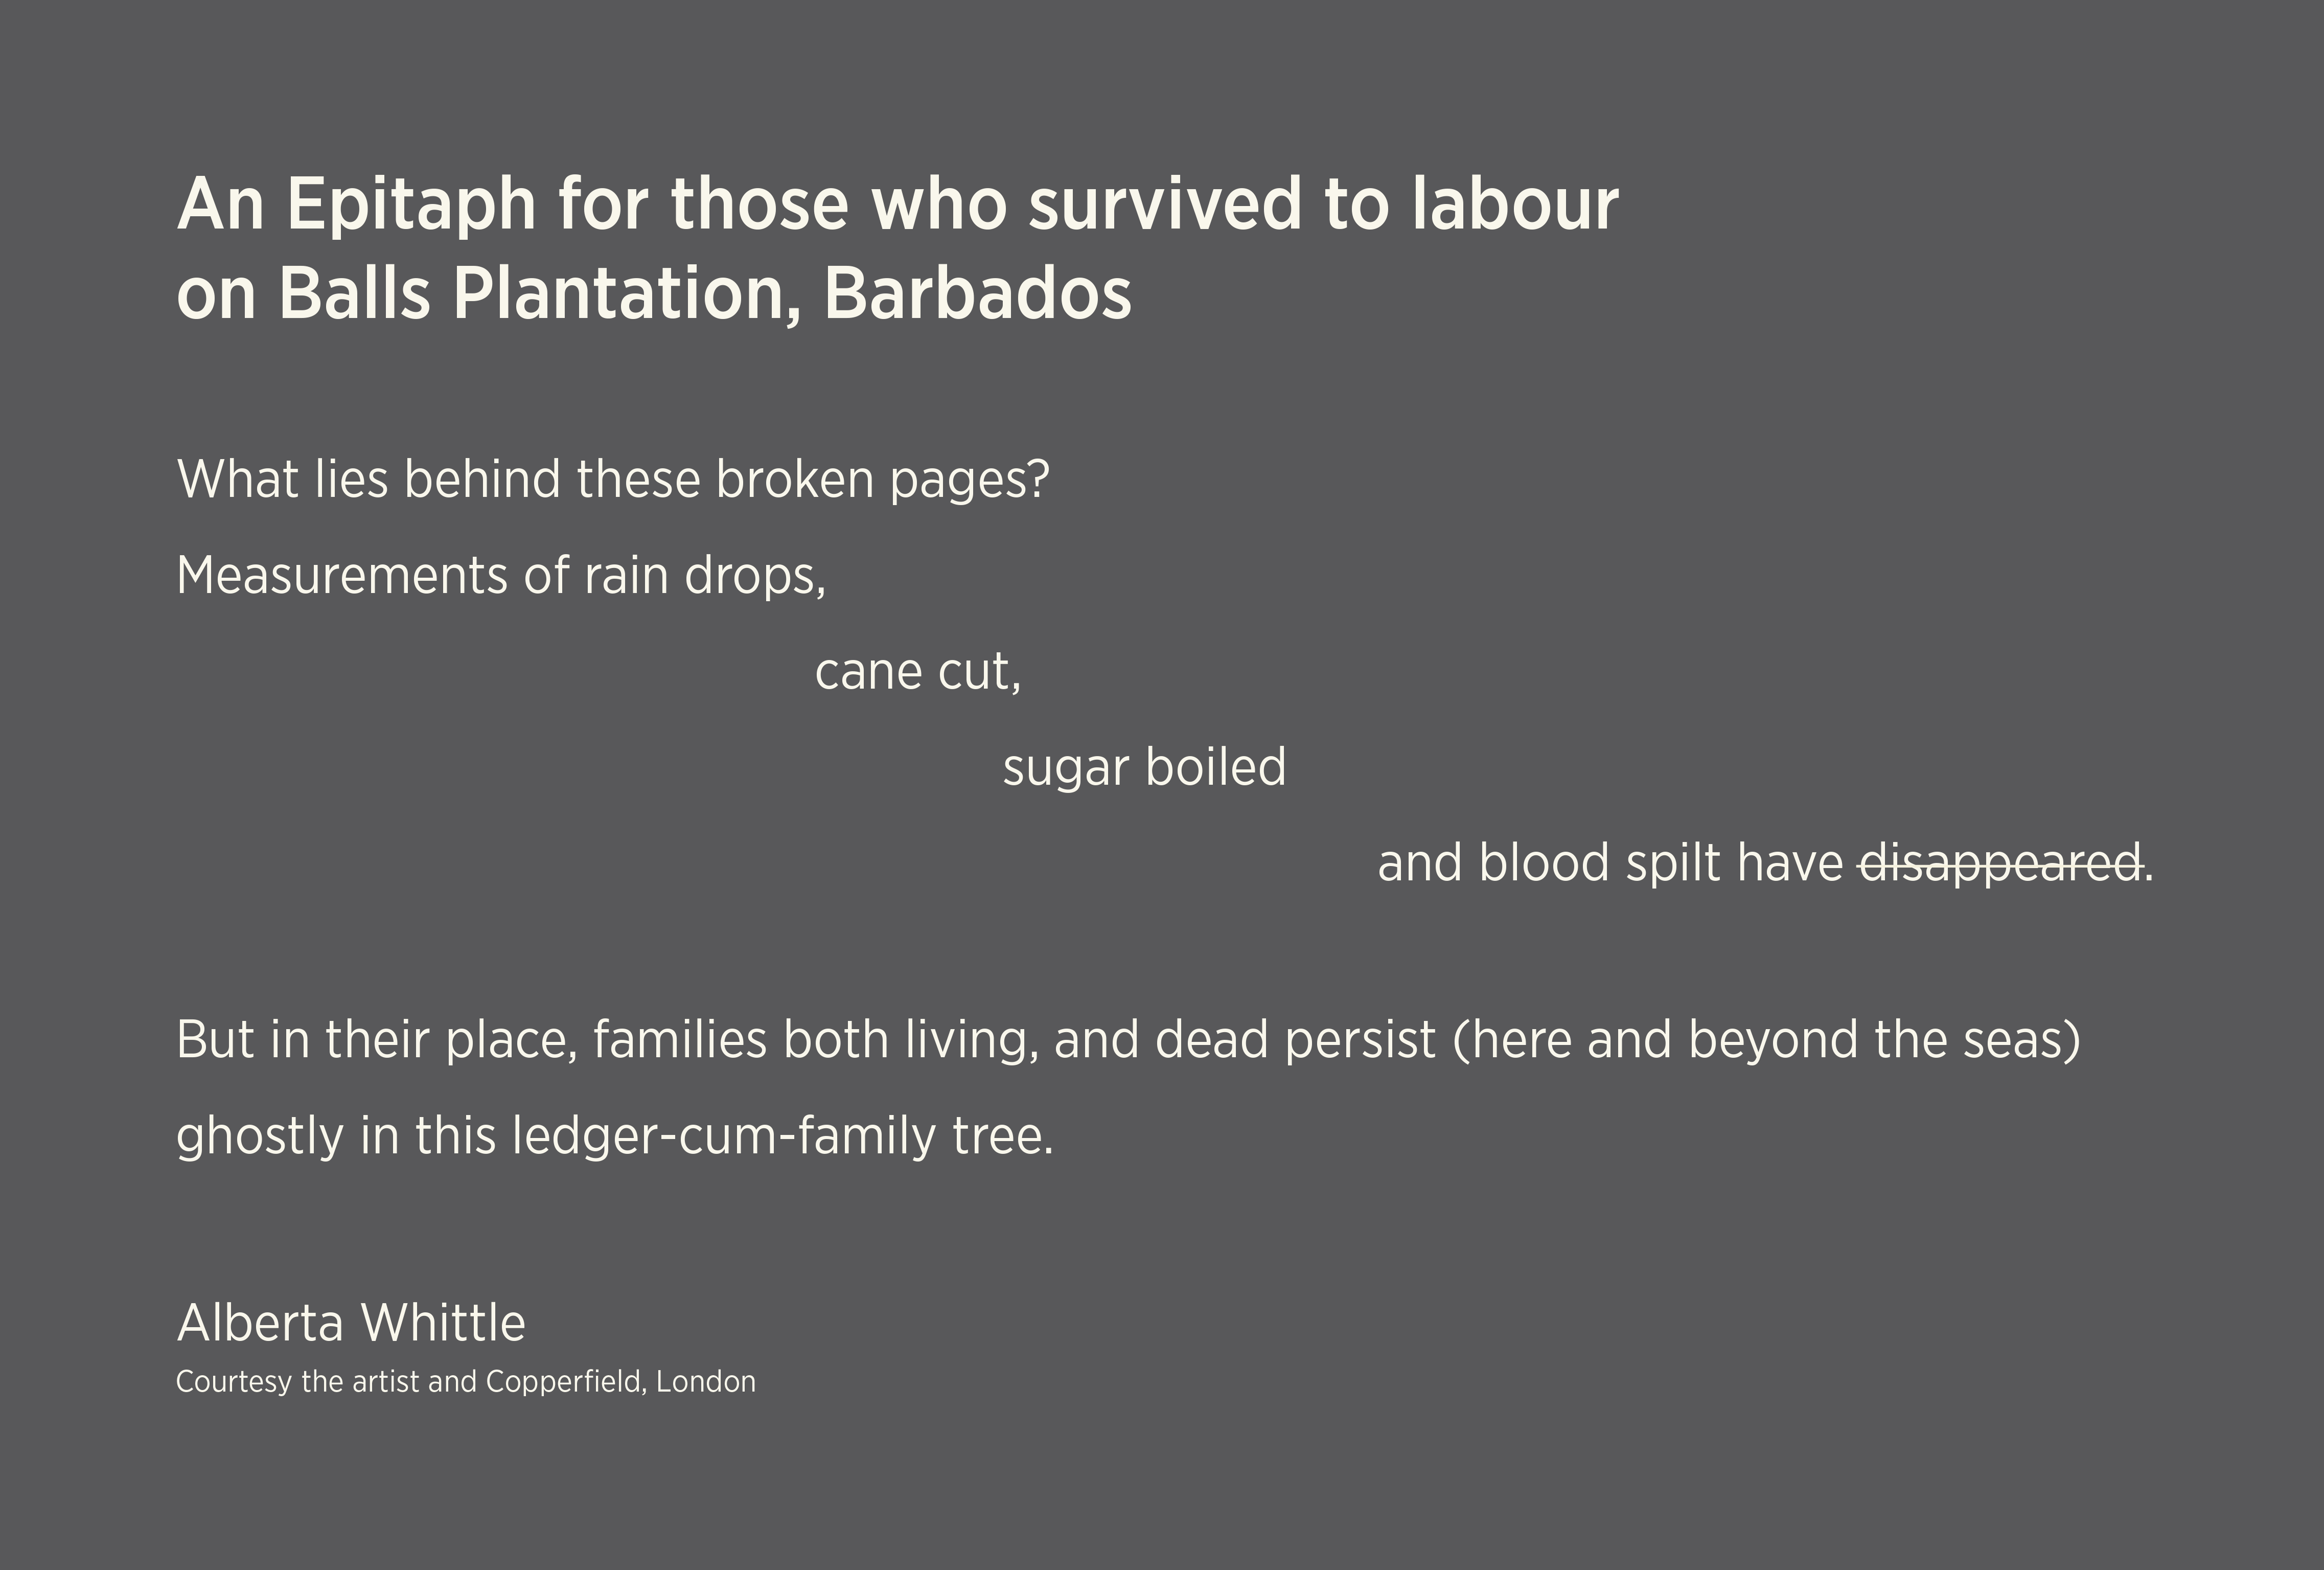 An Epitaph for those who survived to labour on Balls Plantation, Barbados. What lies behind these broken pages? Measurements of rain drops, cain cut, sugar boiled and blood spit have disappeared. But in their place, families both living, and dead persist (here any beyond the seas) ghostly in this ledger-cum family tree. Alberta Whittle